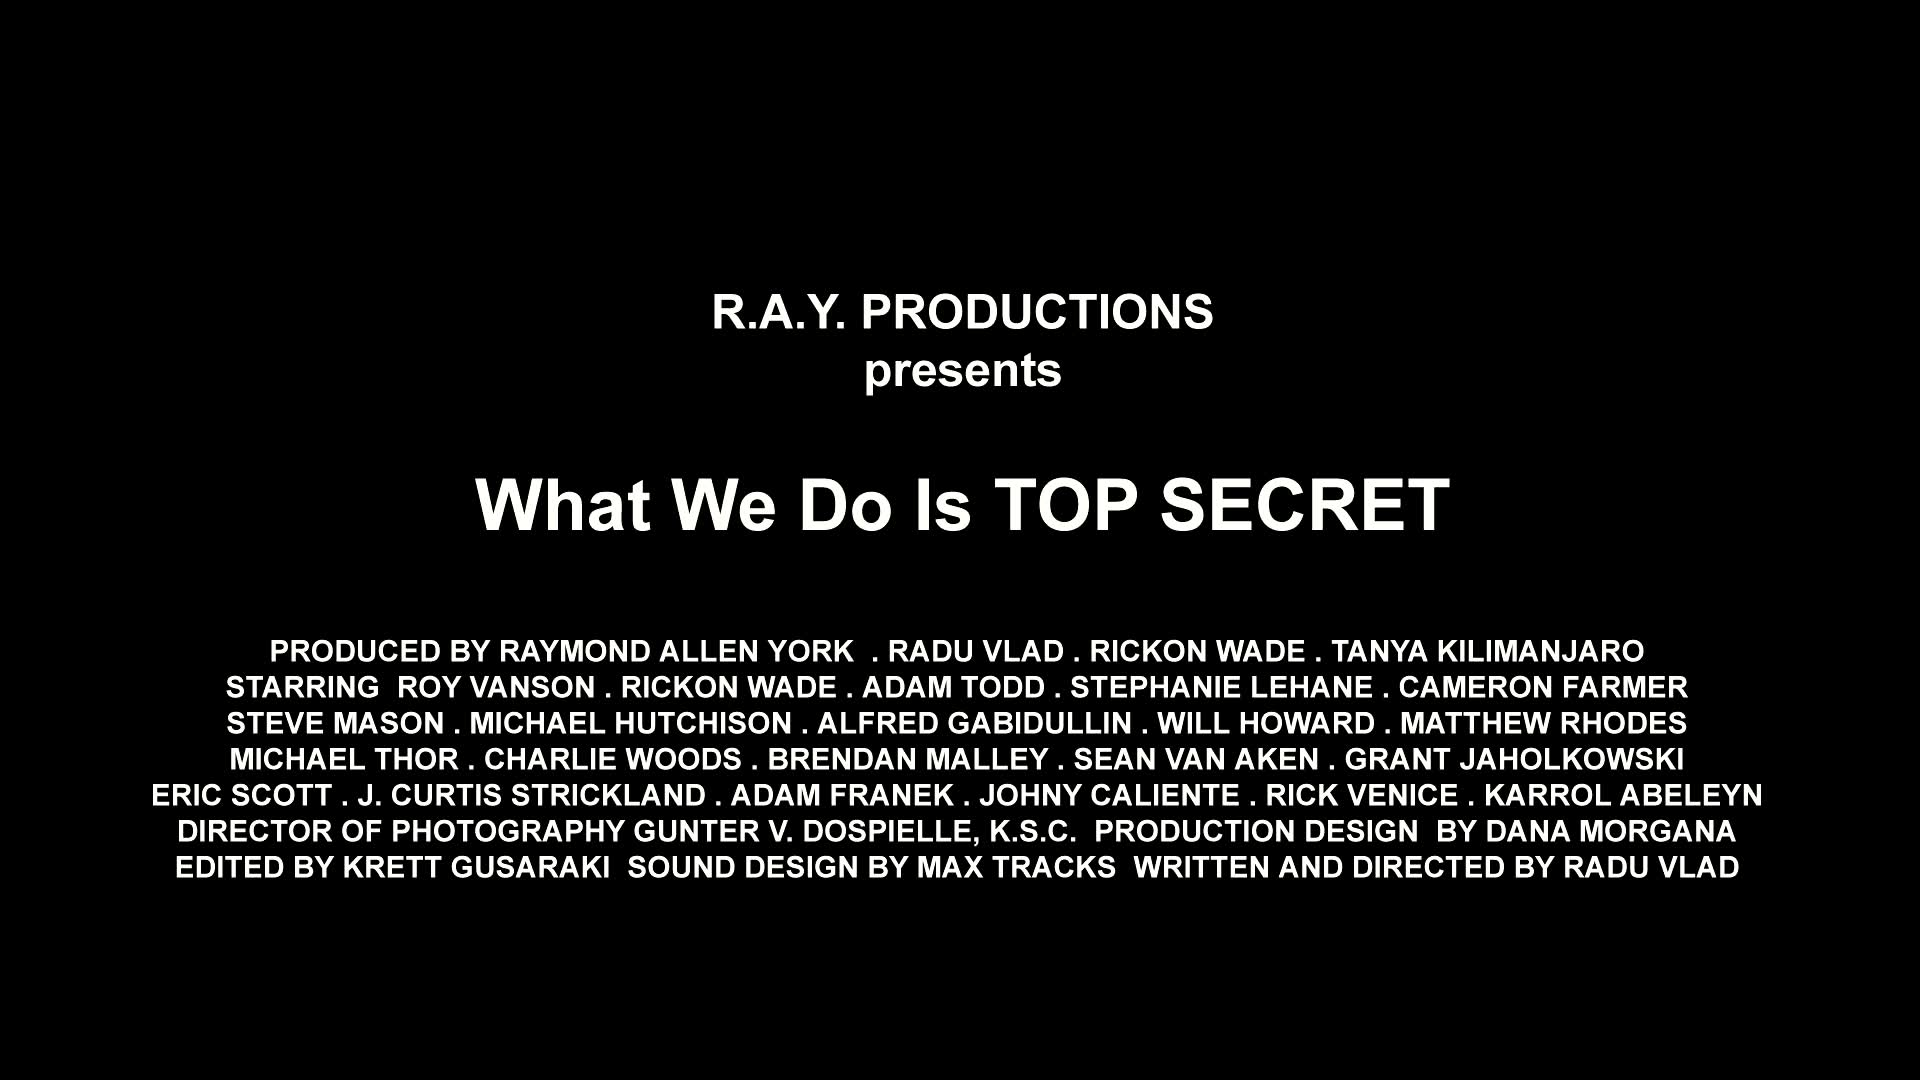 What We Do Is Top Secret movie download in hd